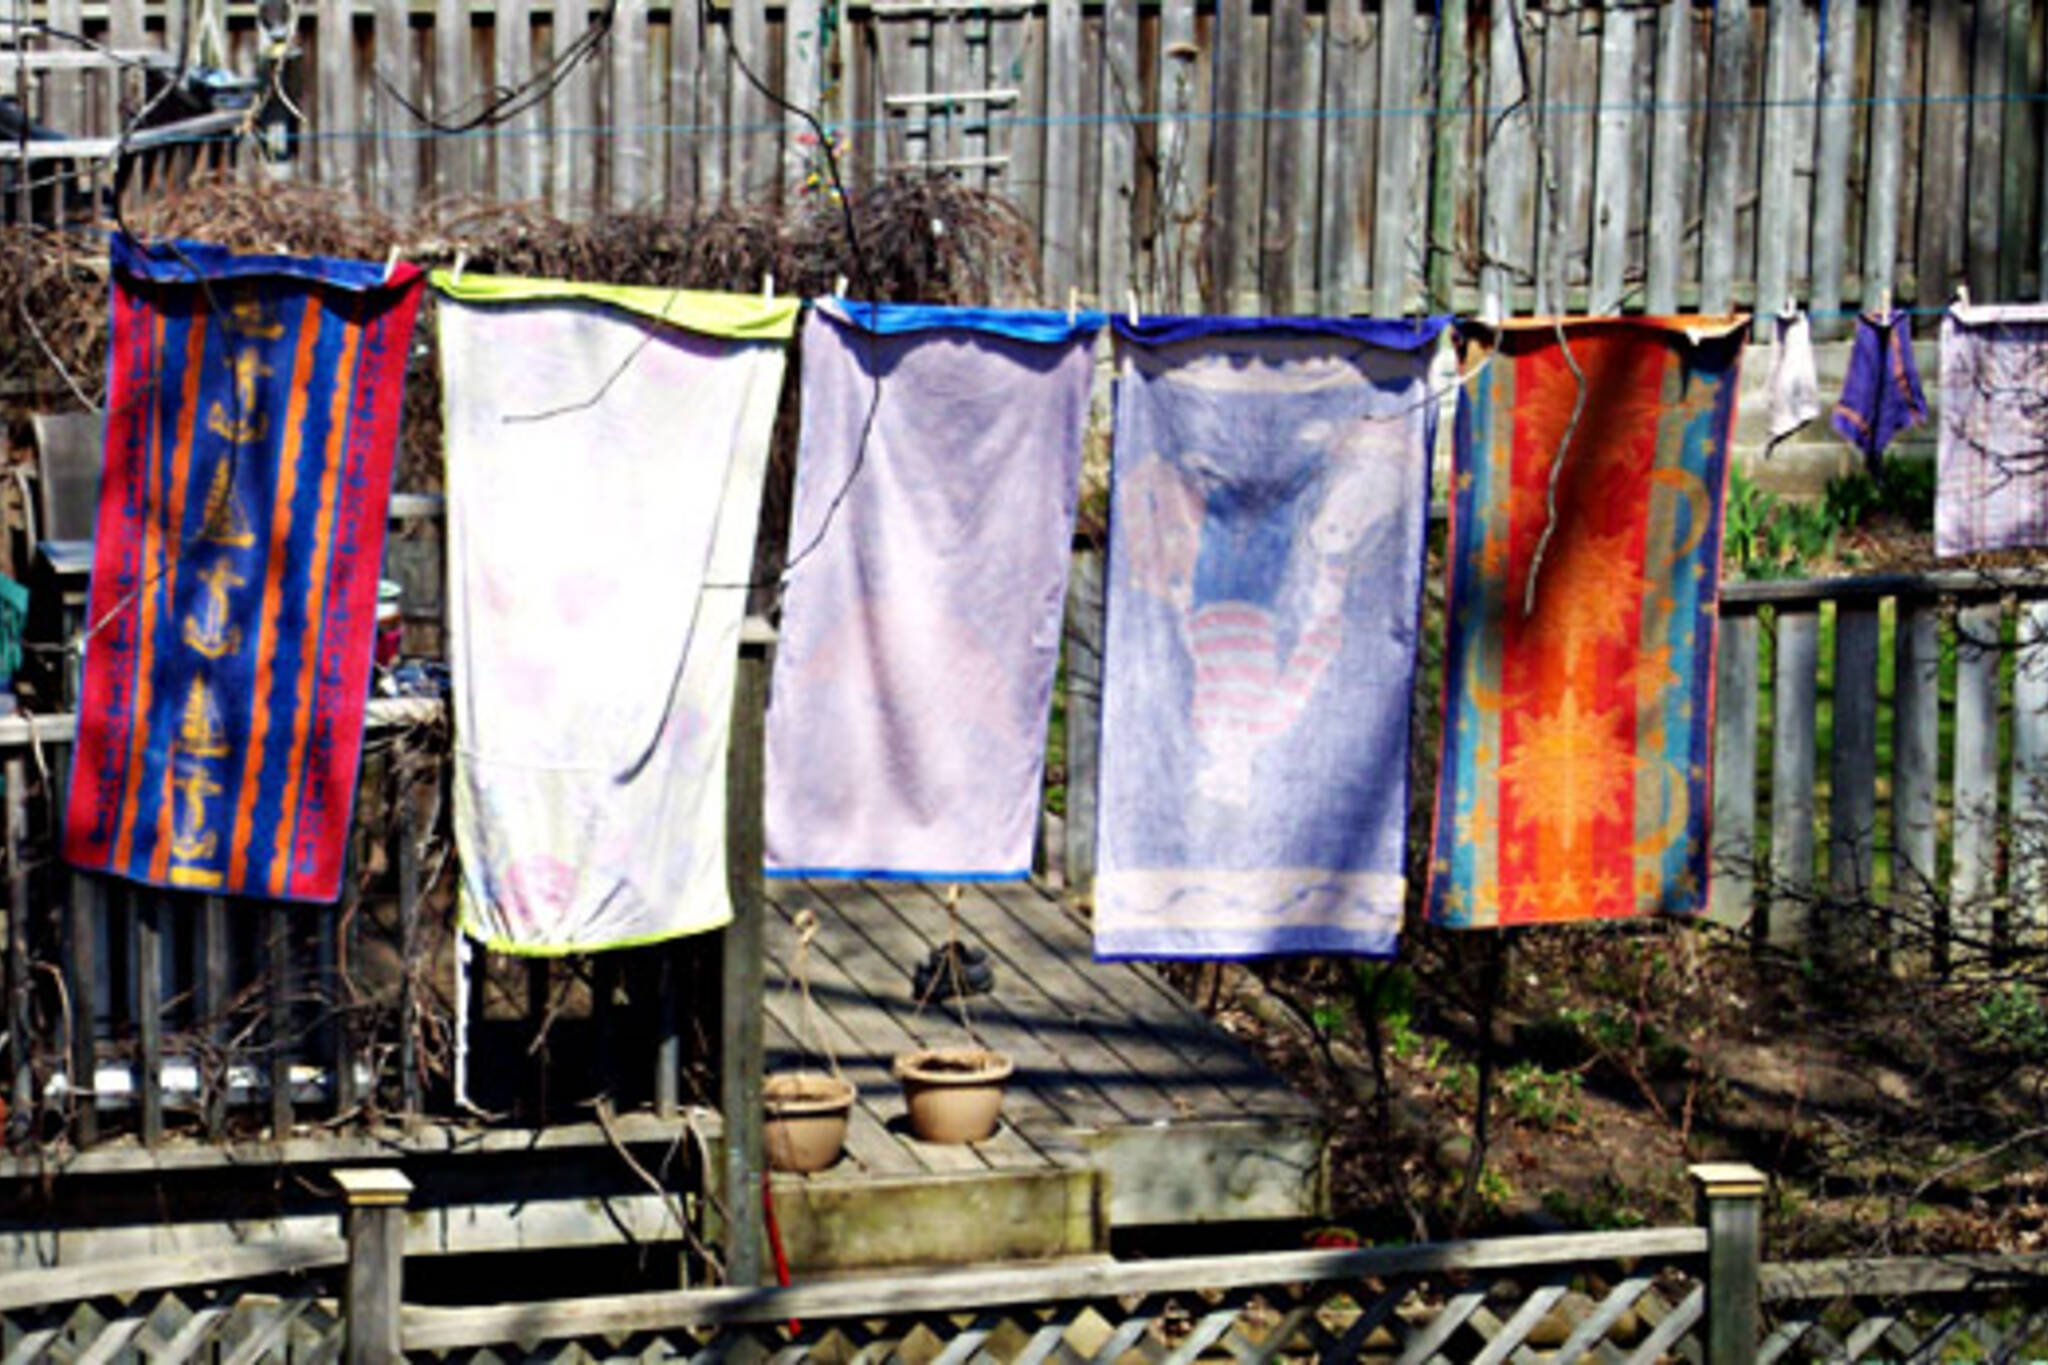 Clotheslines can no longer be banned in Ontario.